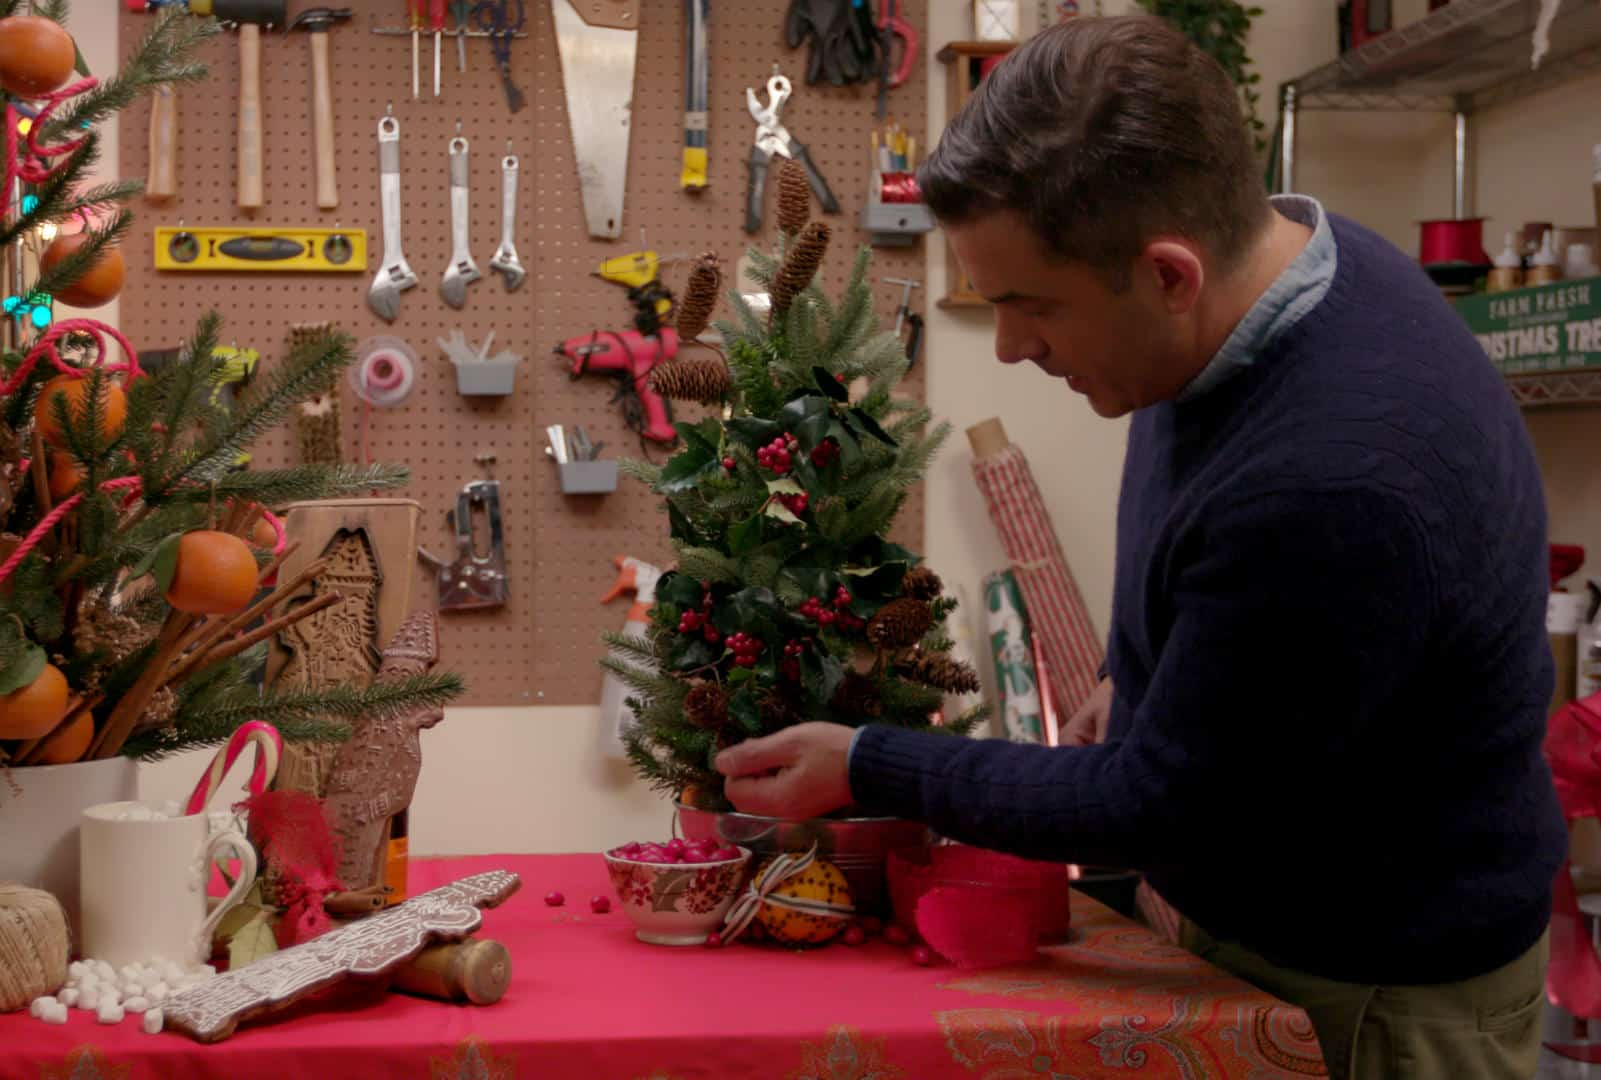 HOLIDAY HOME MAKEOVER WITH MR. CHRISTMAS - Benjamin Bradley in Episode 2 of HOLIDAY HOME MAKEOVER WITH MR. CHRISTMAS. CR. Courtesy of Netflix/©NETFLIX 2020